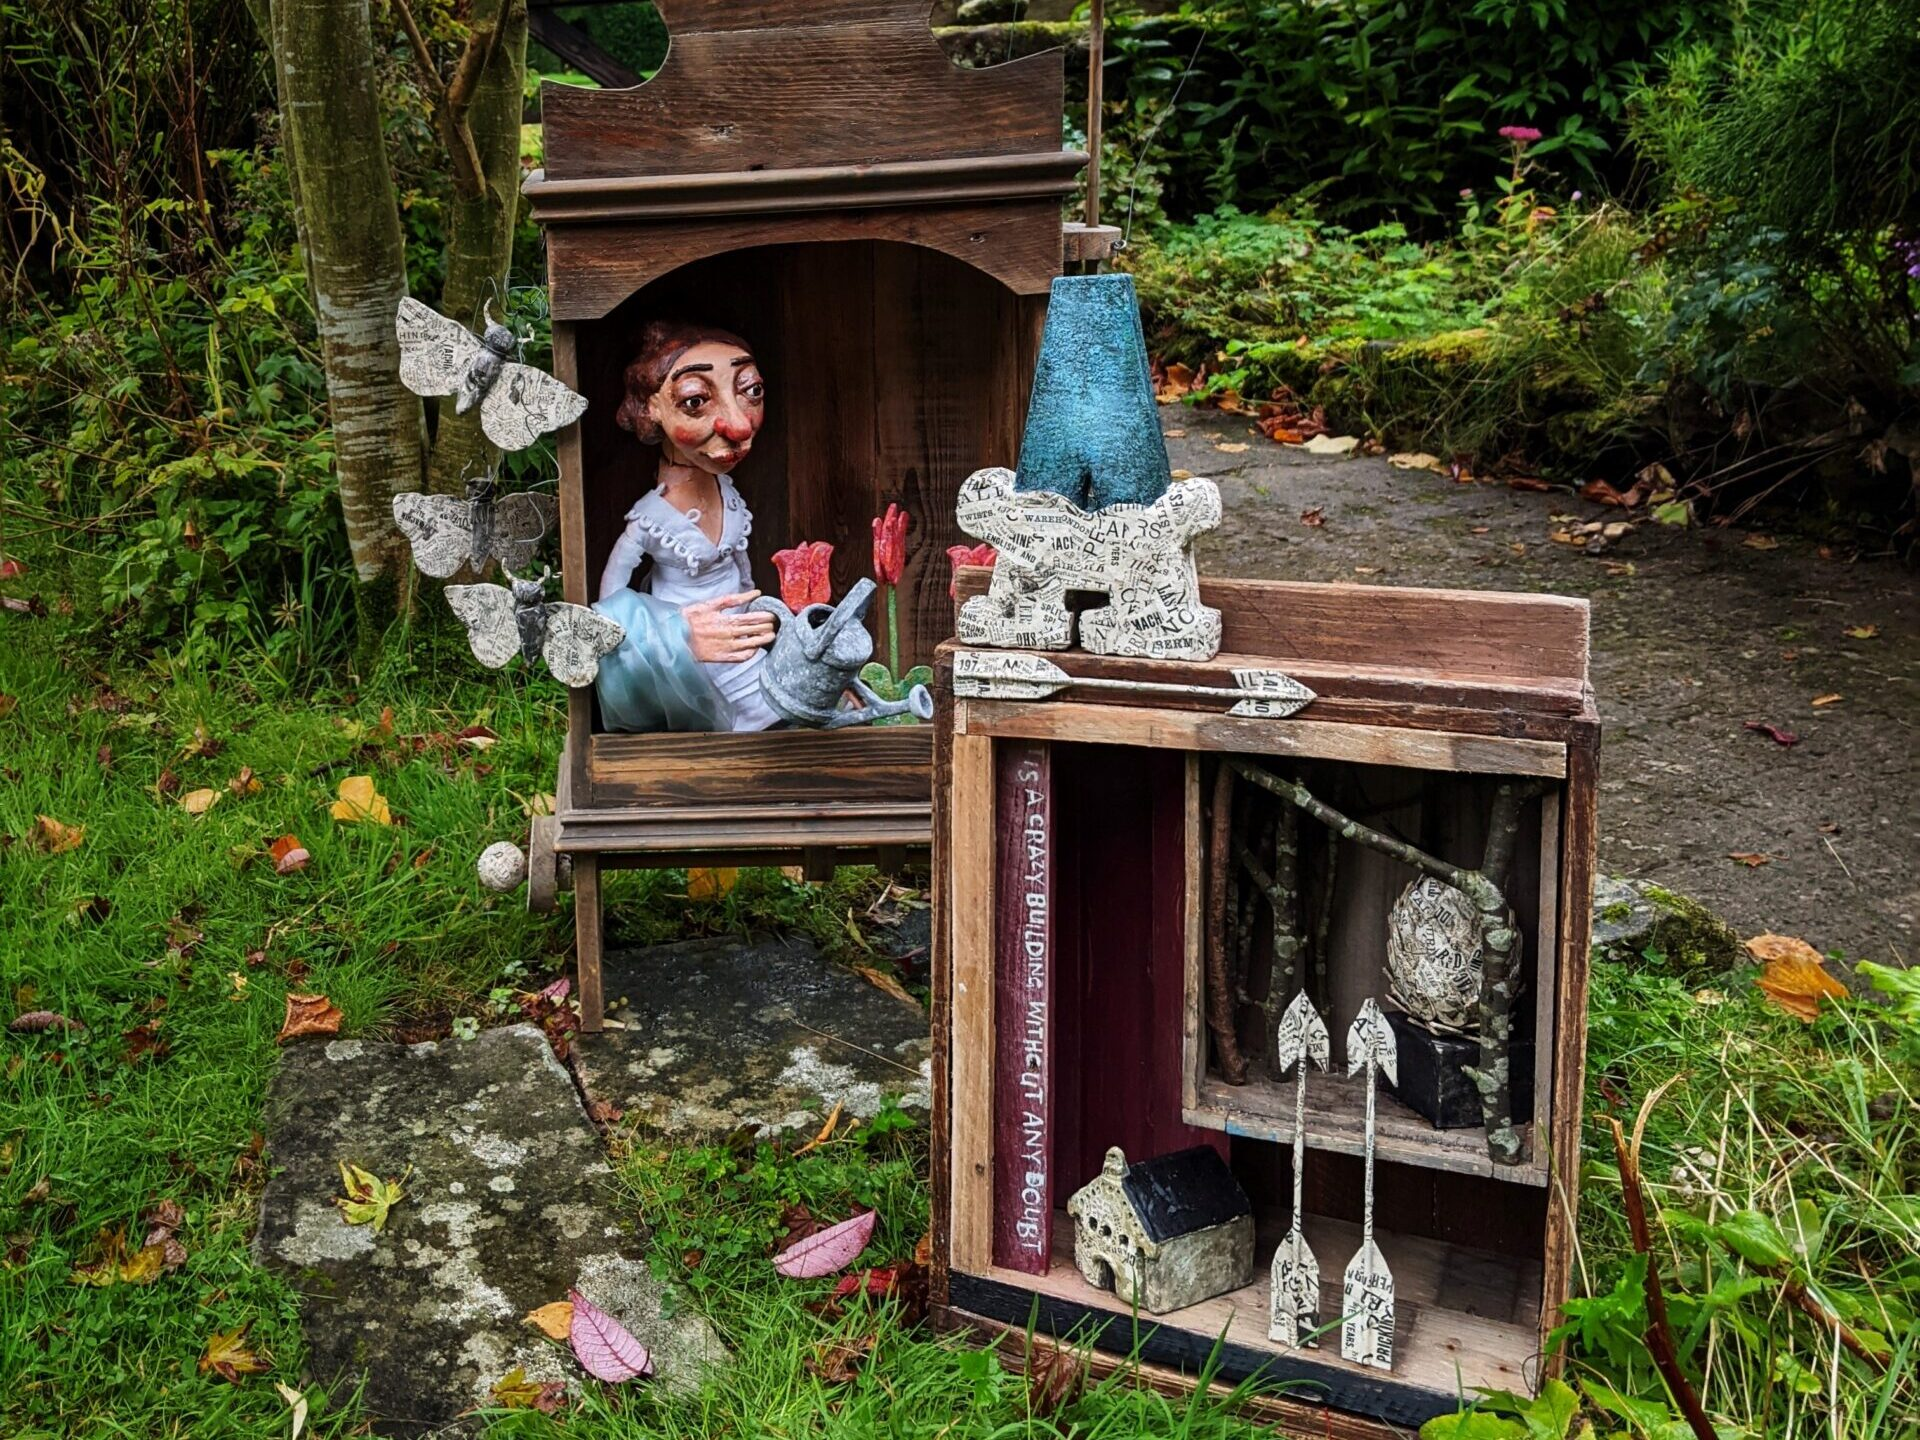 Image of an automata in a box outside on grass